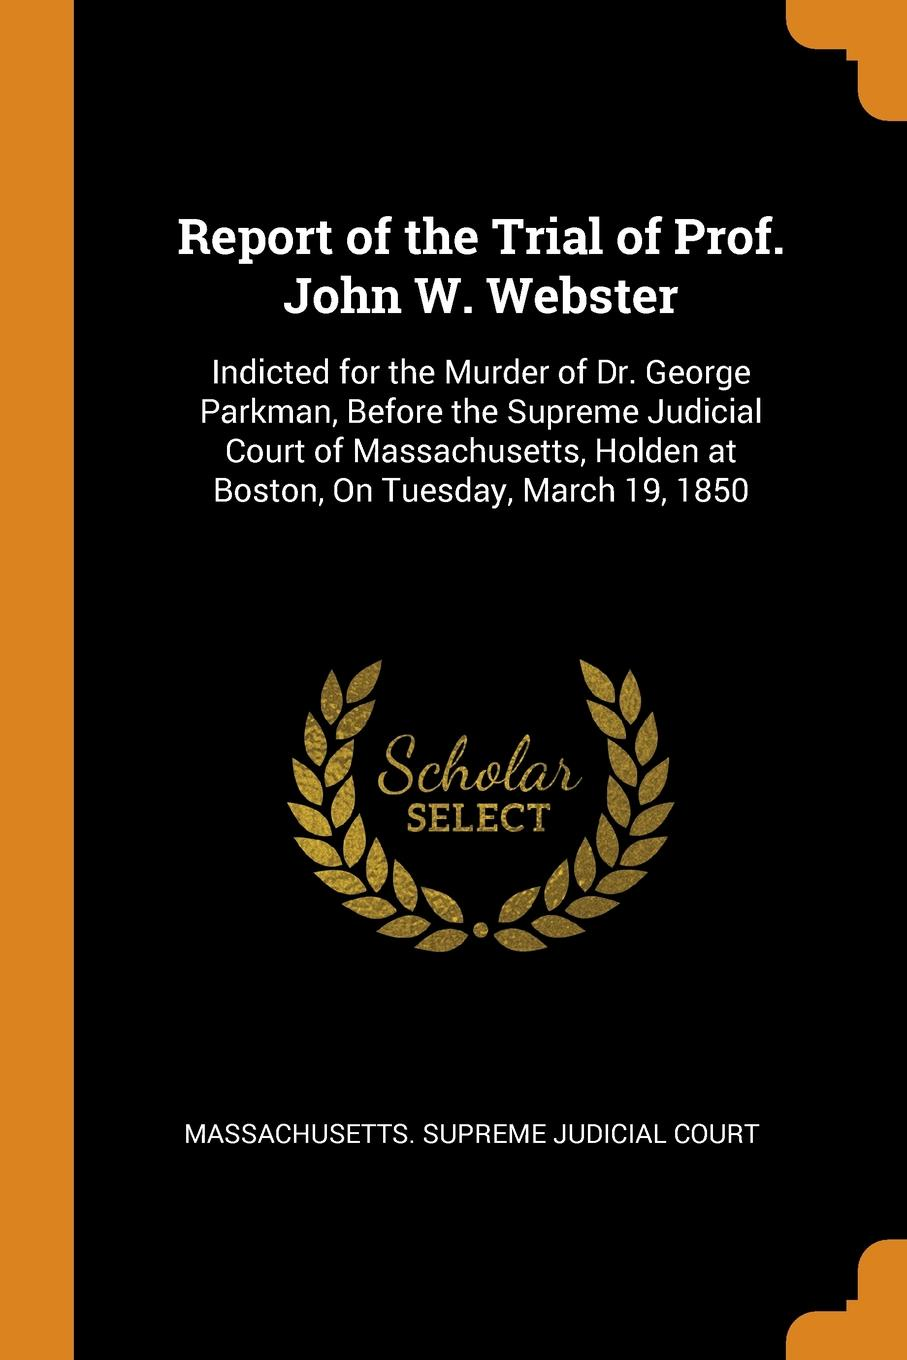 Report-of-the-Trial-of-Prof-John-W-Webster-Indicted-for-the-Murder-of-Dr-George-Parkman-Before-the-Supreme-Judicial-Court-of-Massachusetts-Holden-at-B